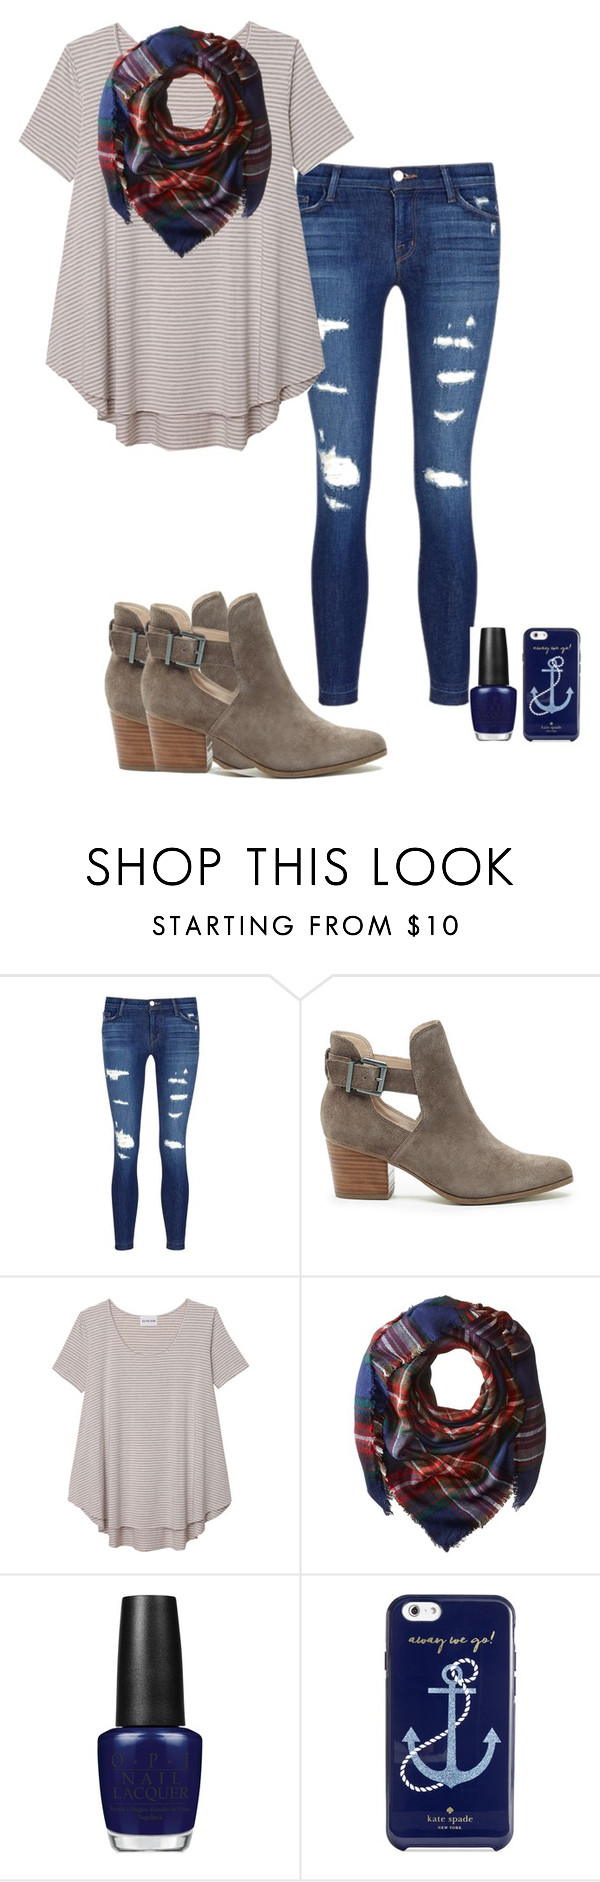 """""""PLEASE LIKE!"""" by amaya-leigh ❤ liked on Polyvore featuring J Brand, Sole Society, Olive + Oak, Steve Madden, OPI and Kate Spade"""